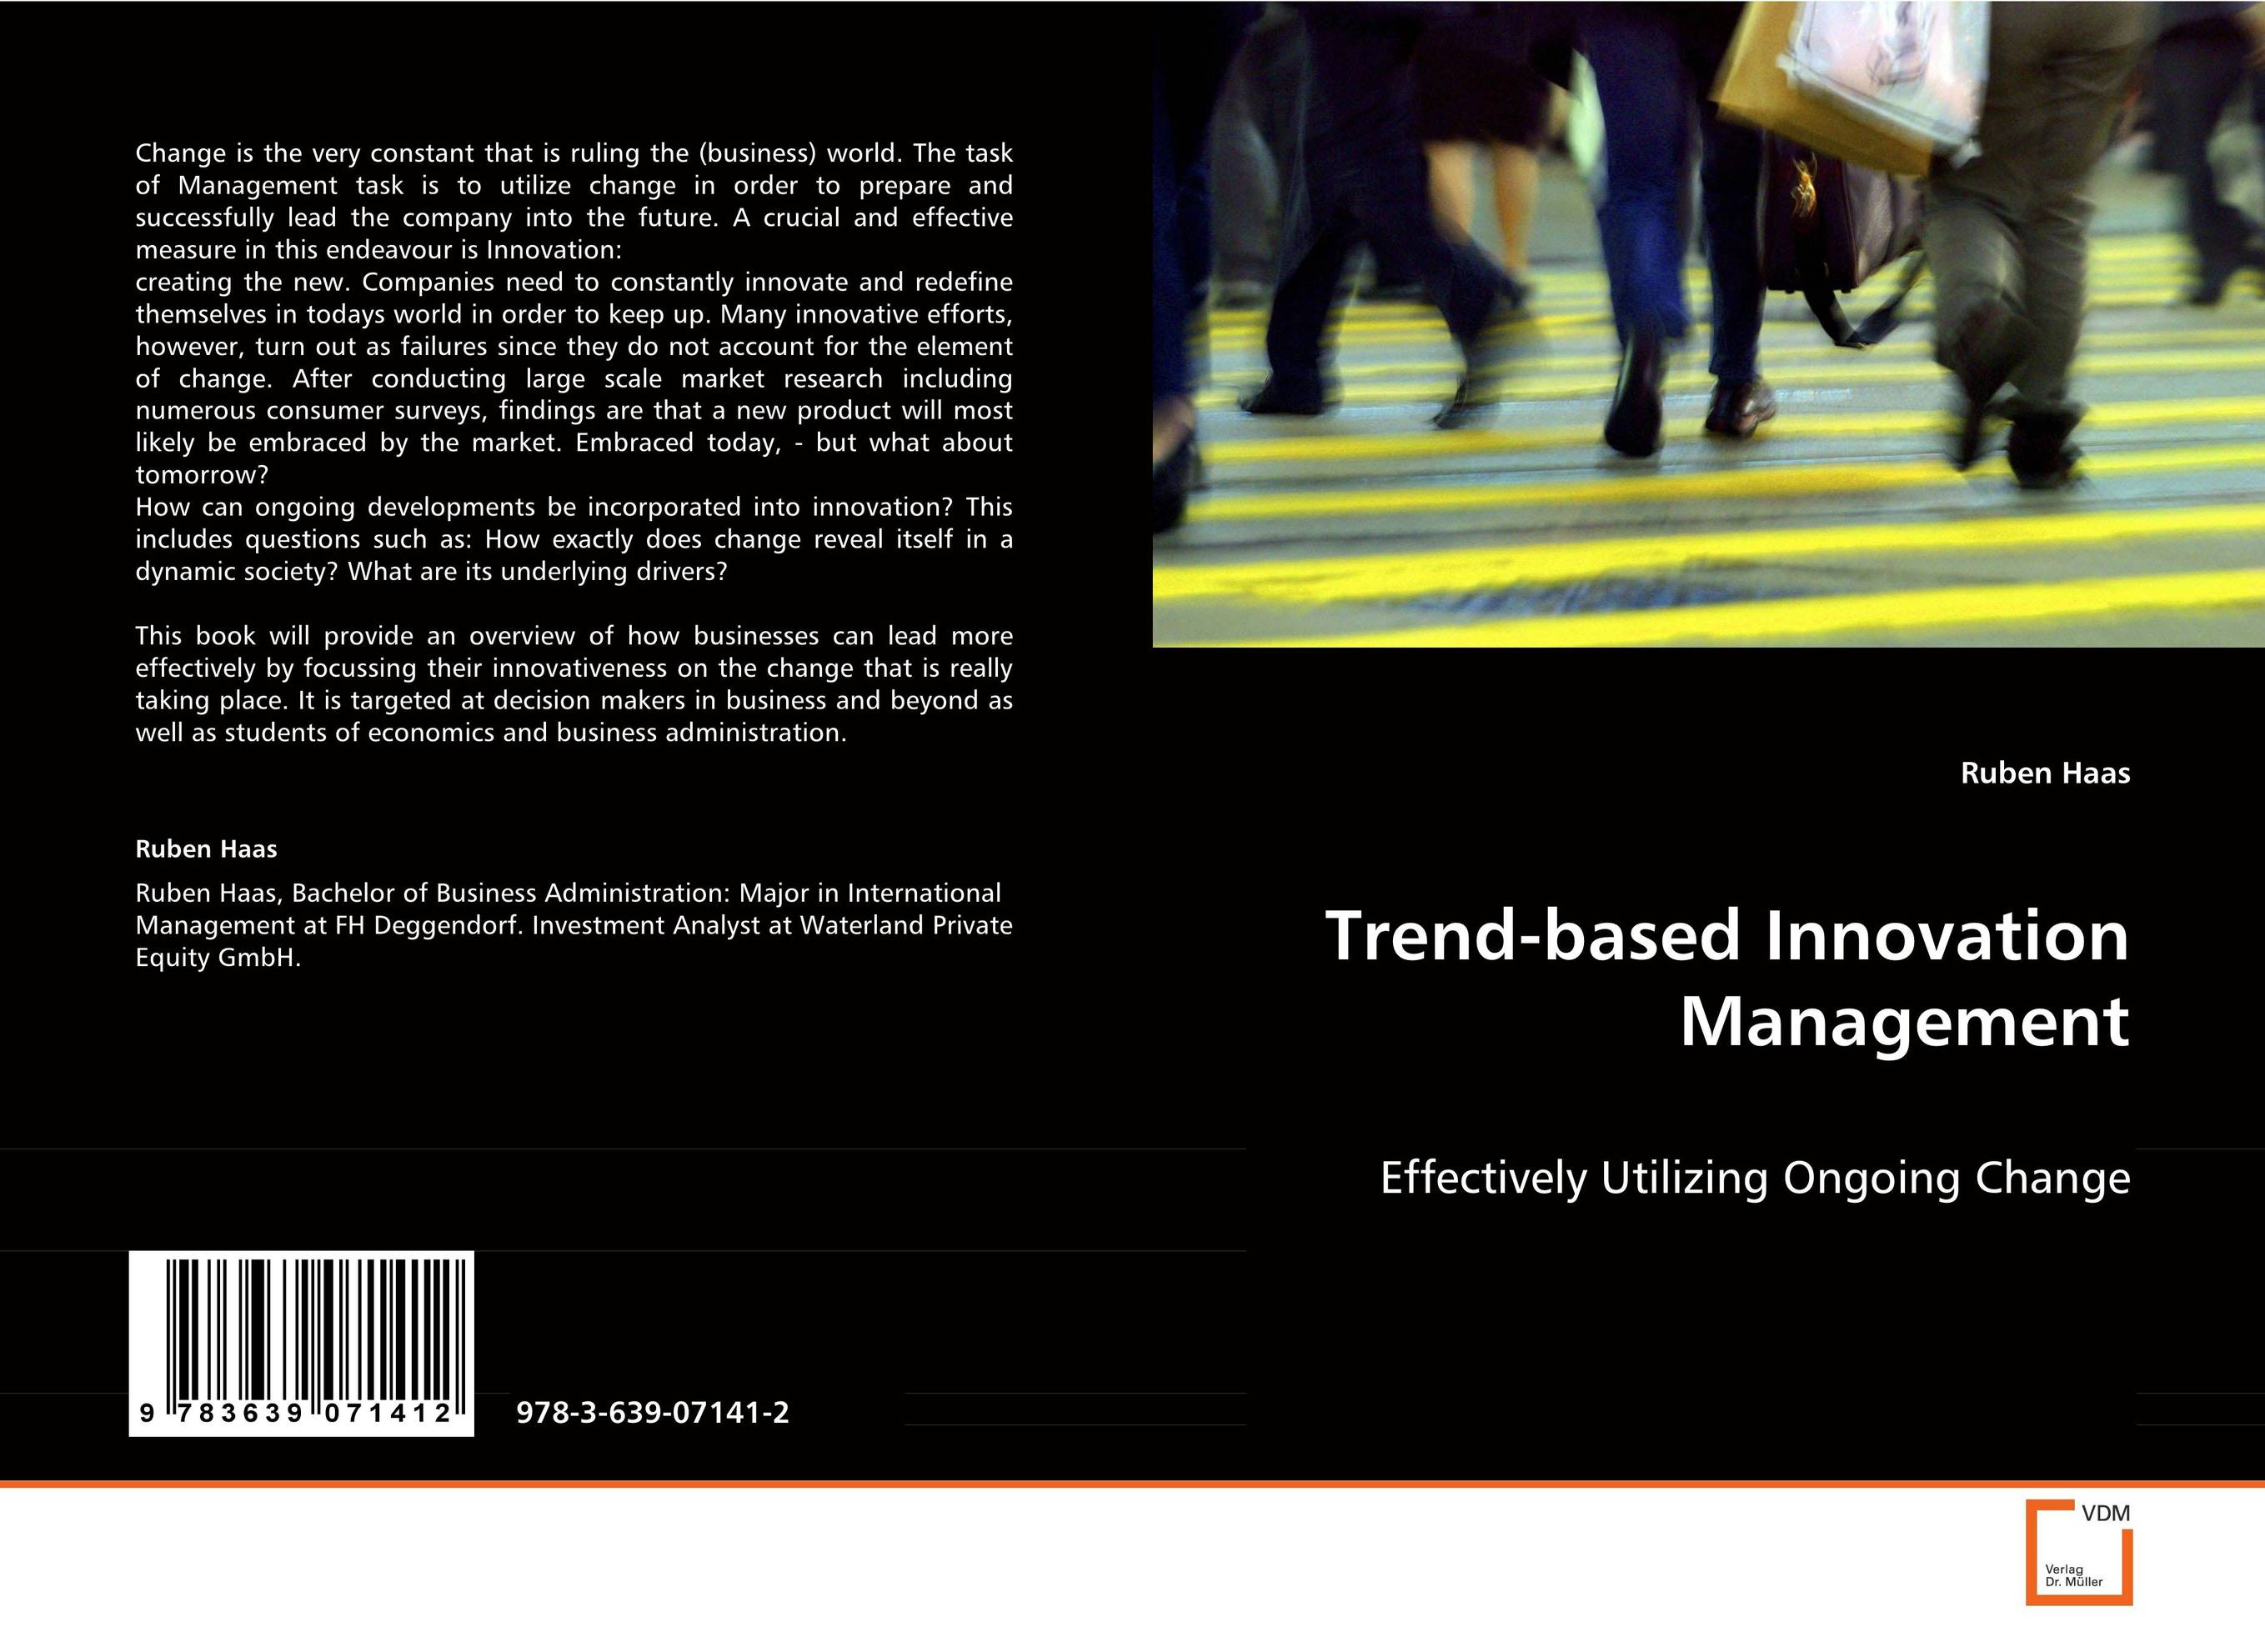 Trend-based Innovation Management saul kaplan the business model innovation factory how to stay relevant when the world is changing